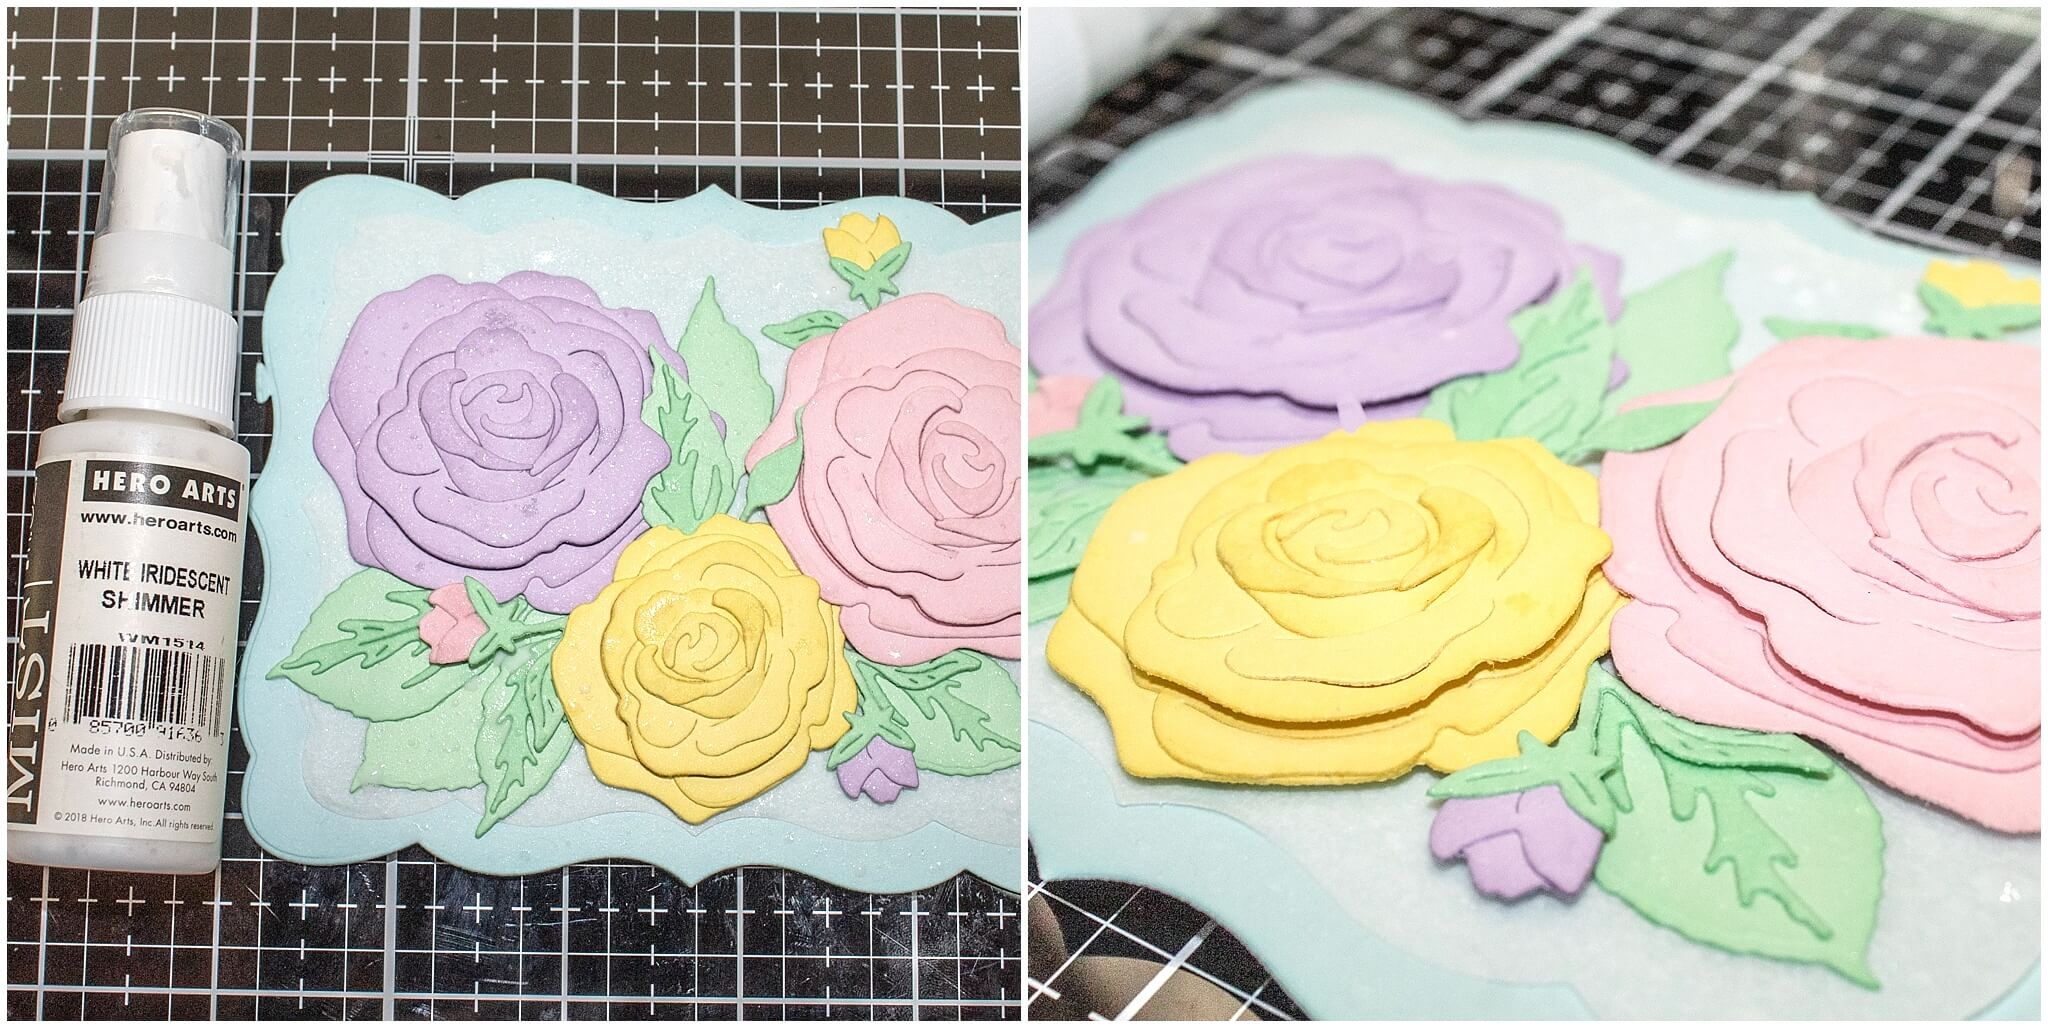 Adding shimmer spray to pastel layered rose card